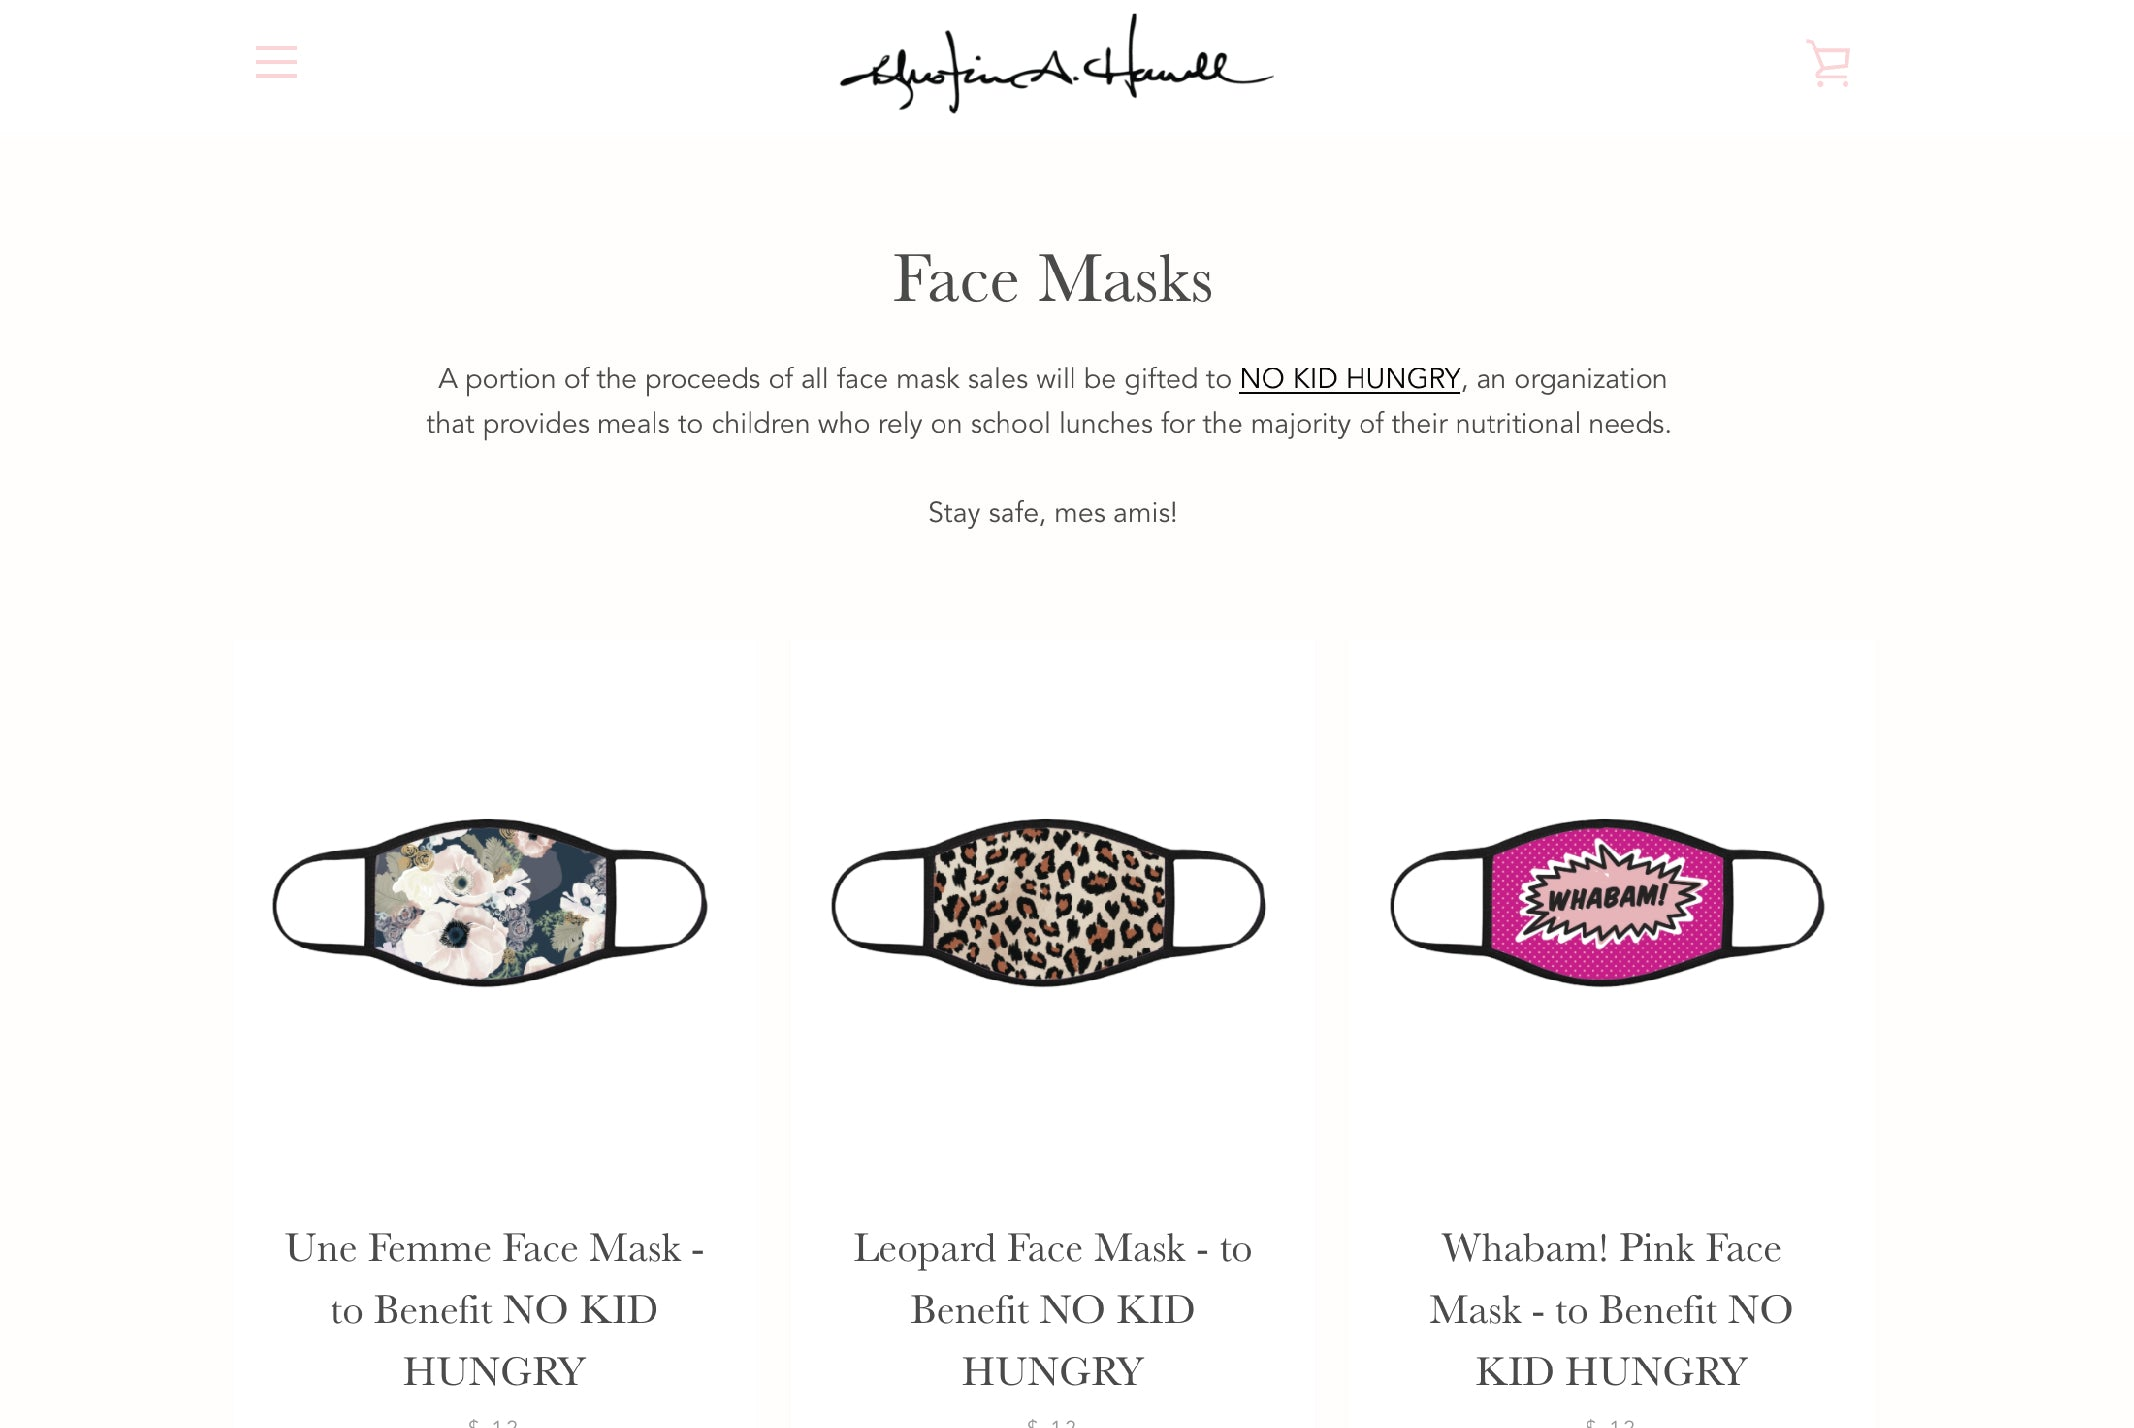 Shop Khristian A. Howell Face Masks to benefit NO KID HUNGRY